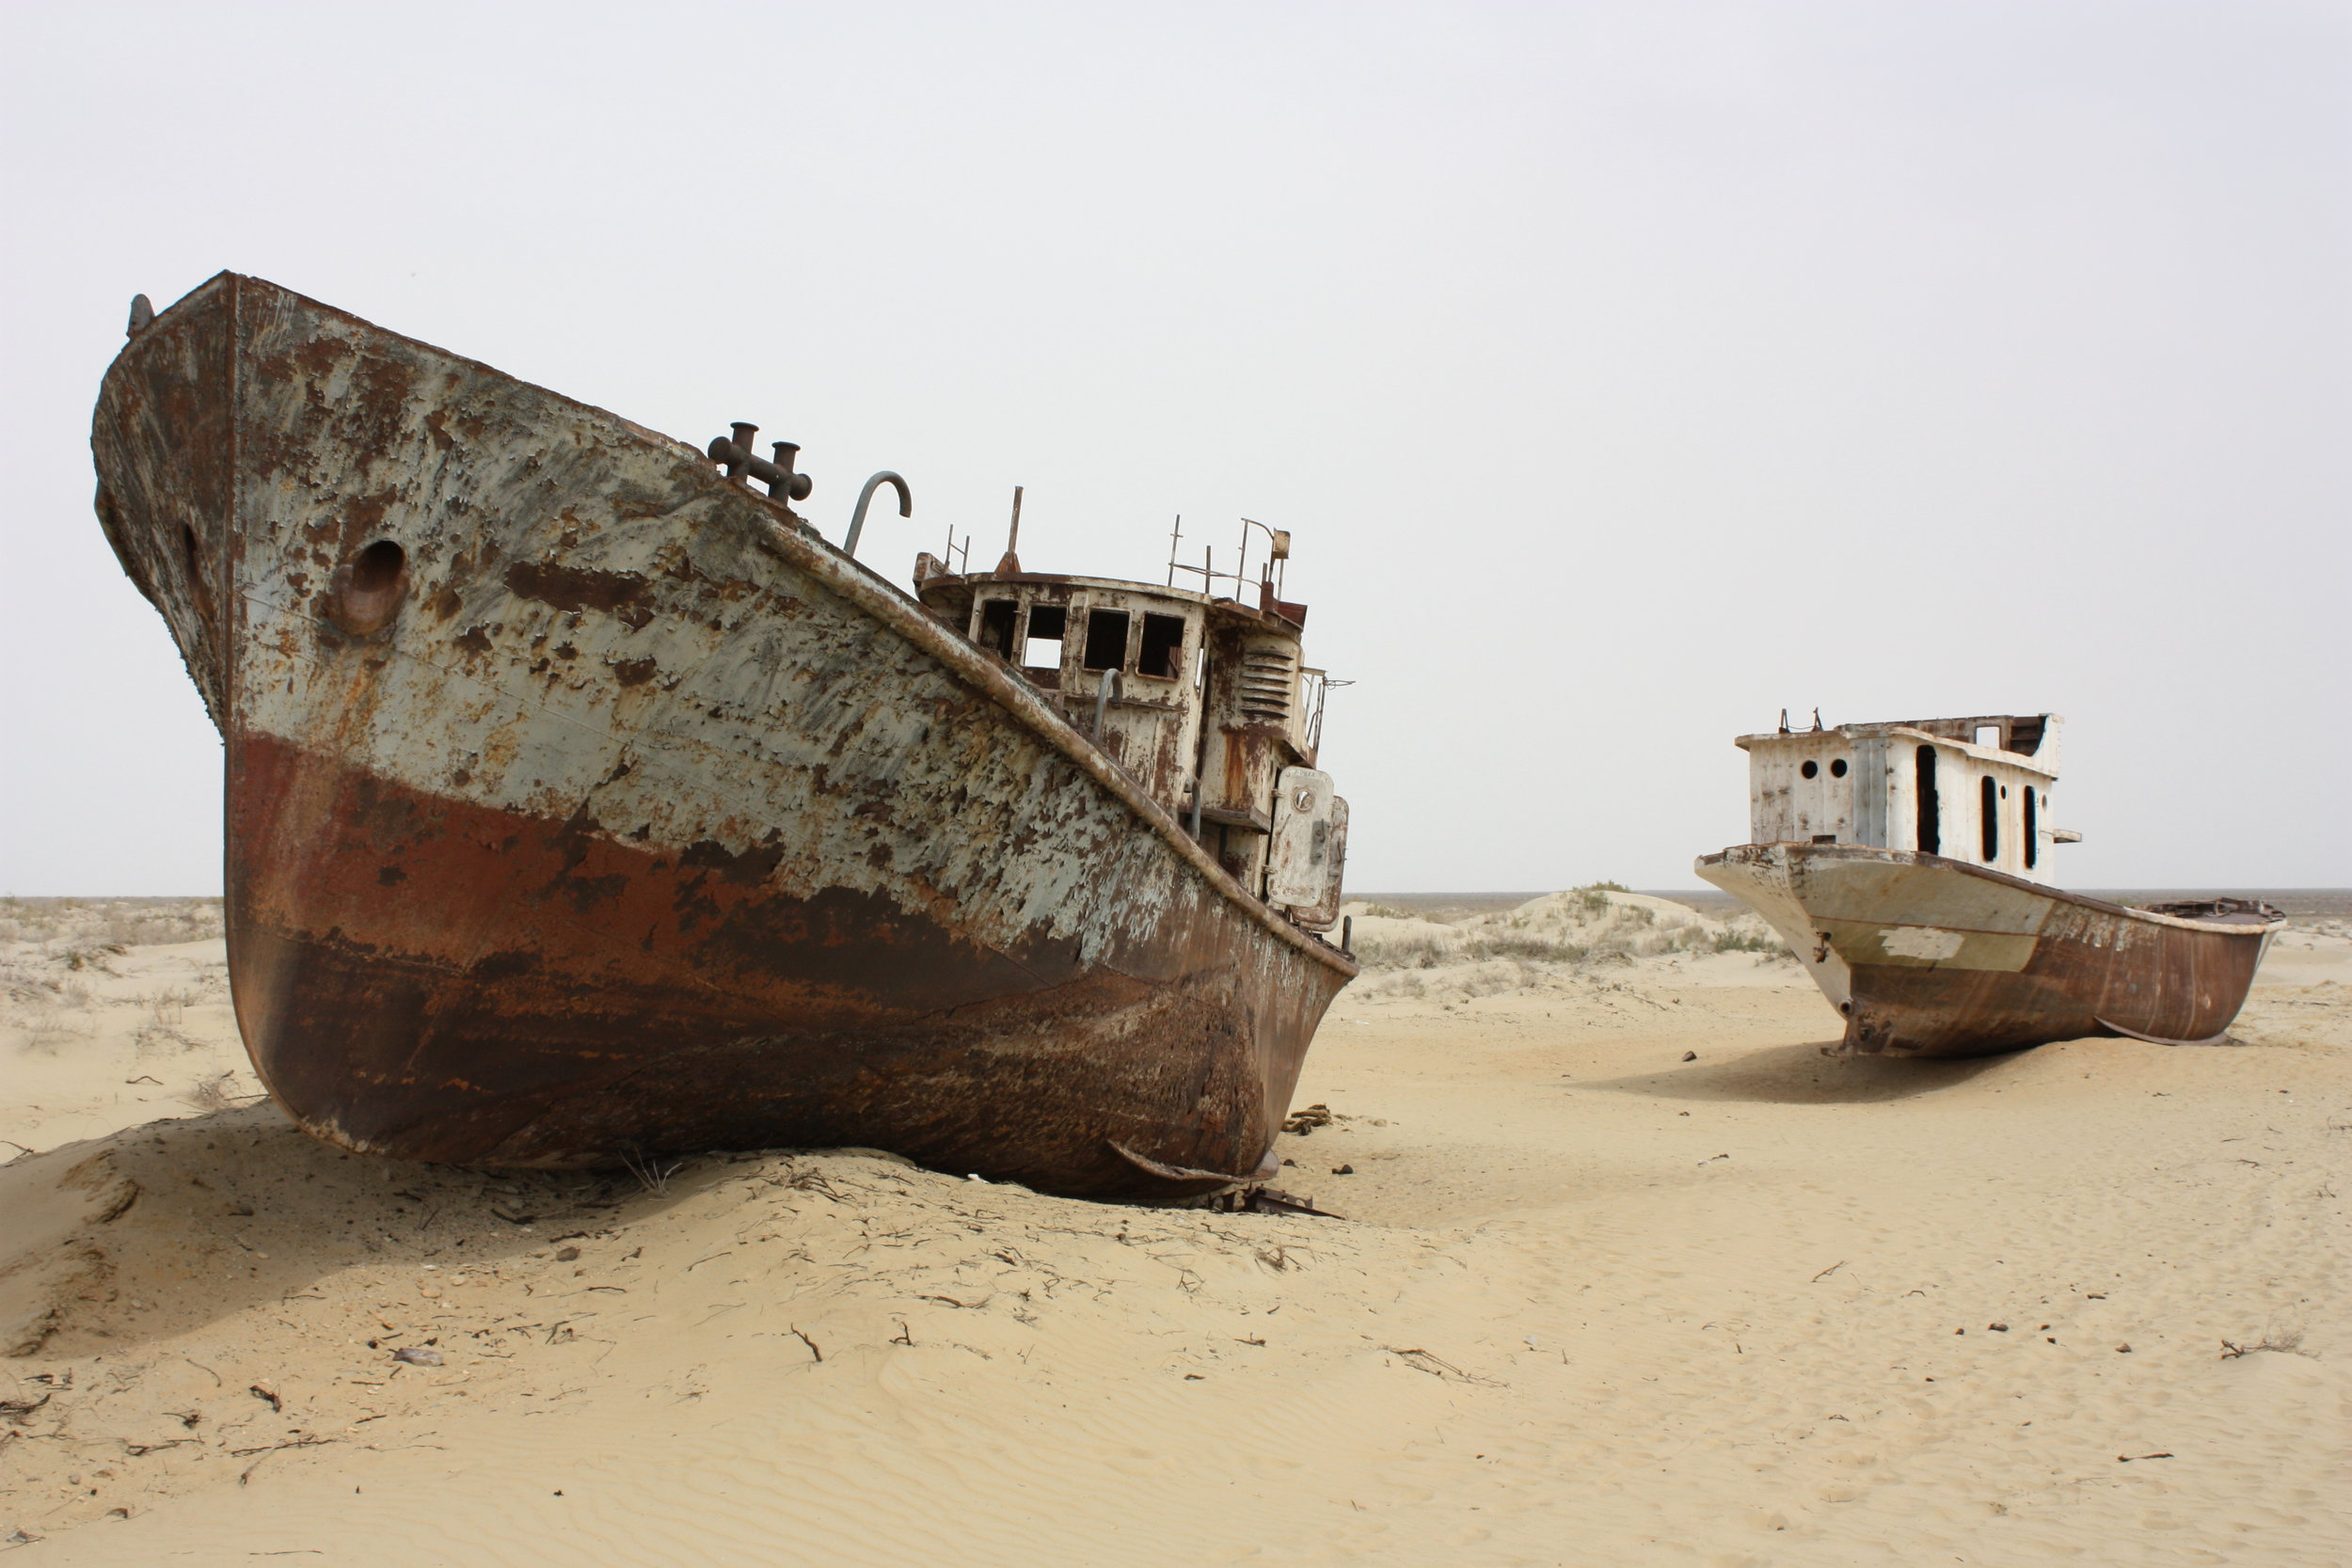 Boats marooned on sand where the Aral Sea once existed - now due to industries like water thirsty cotton, little remains of the water body.